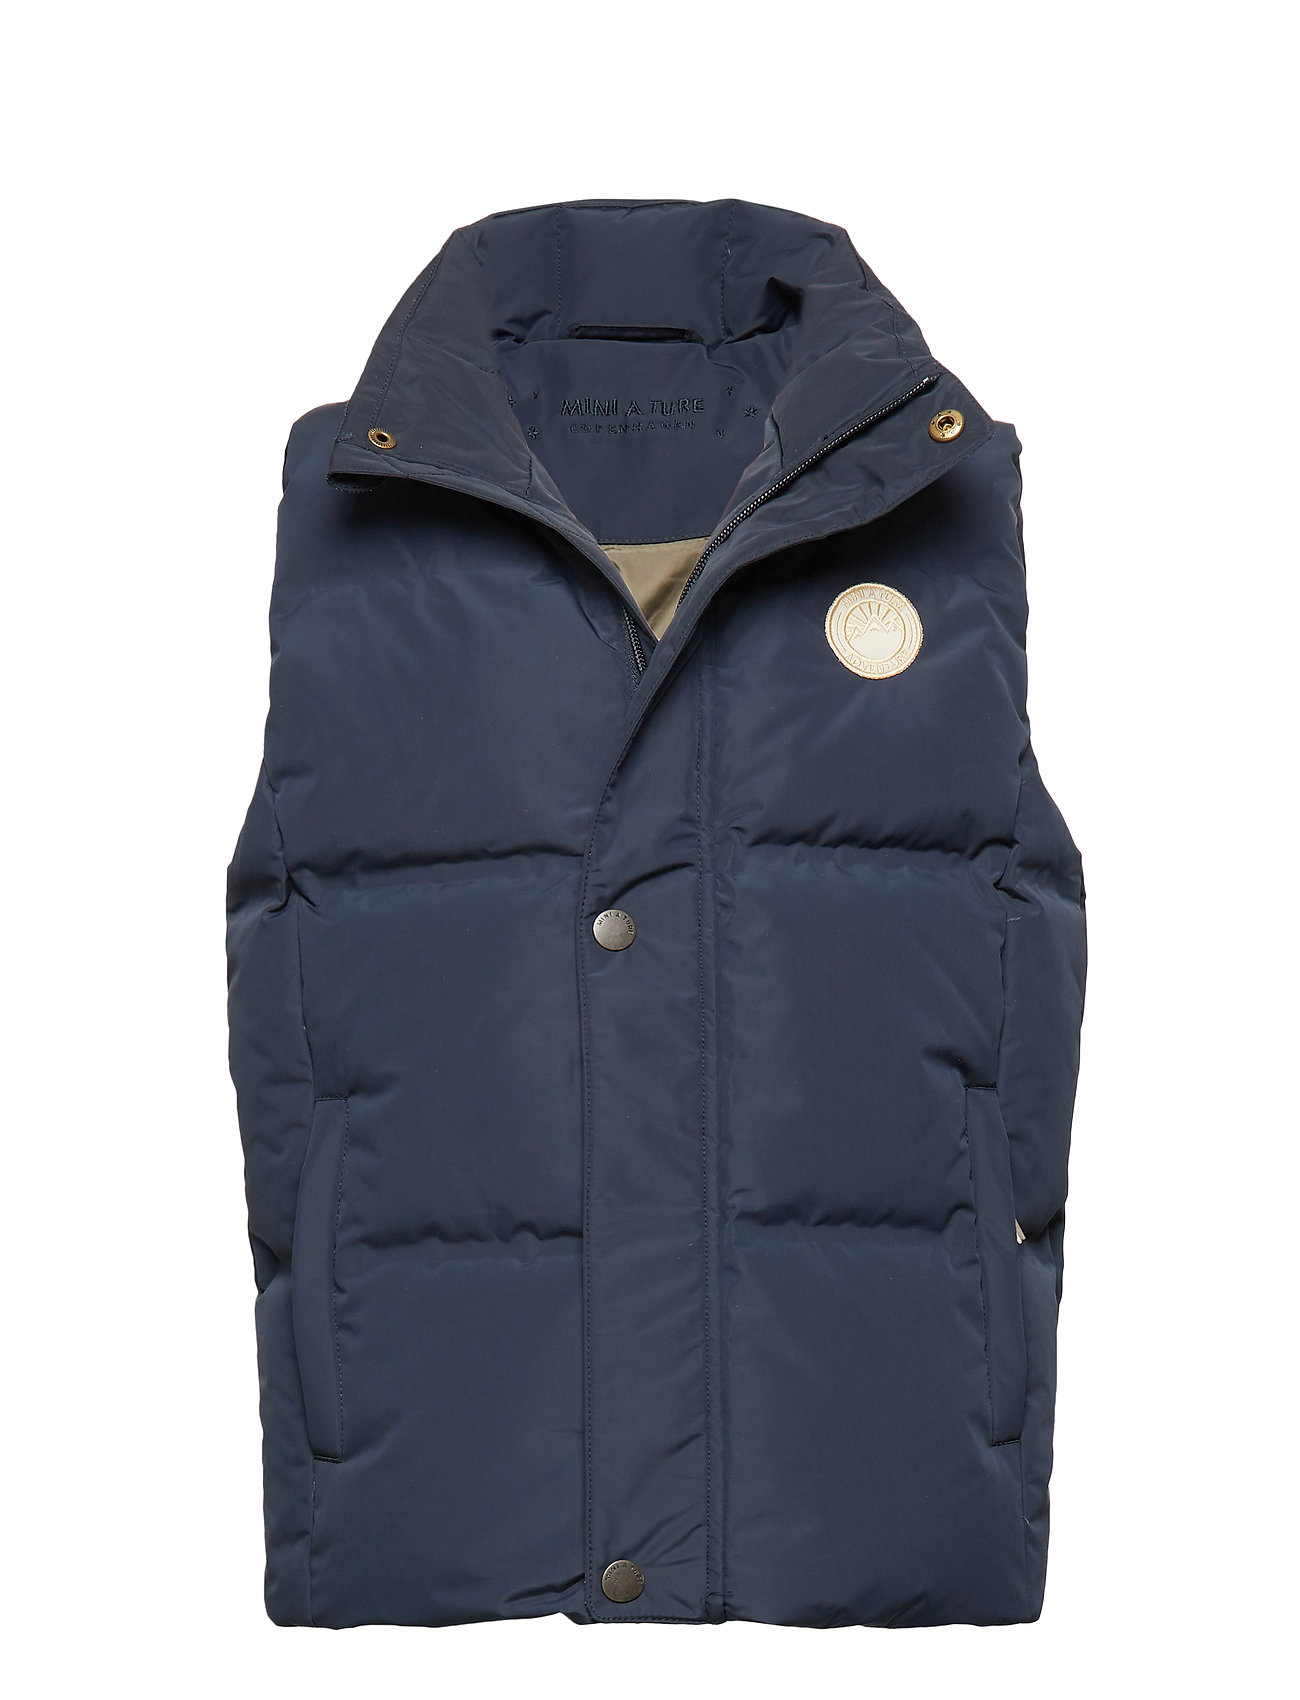 Mini A Ture Wyatt Vest, K - SKY CAPTAIN BLUE